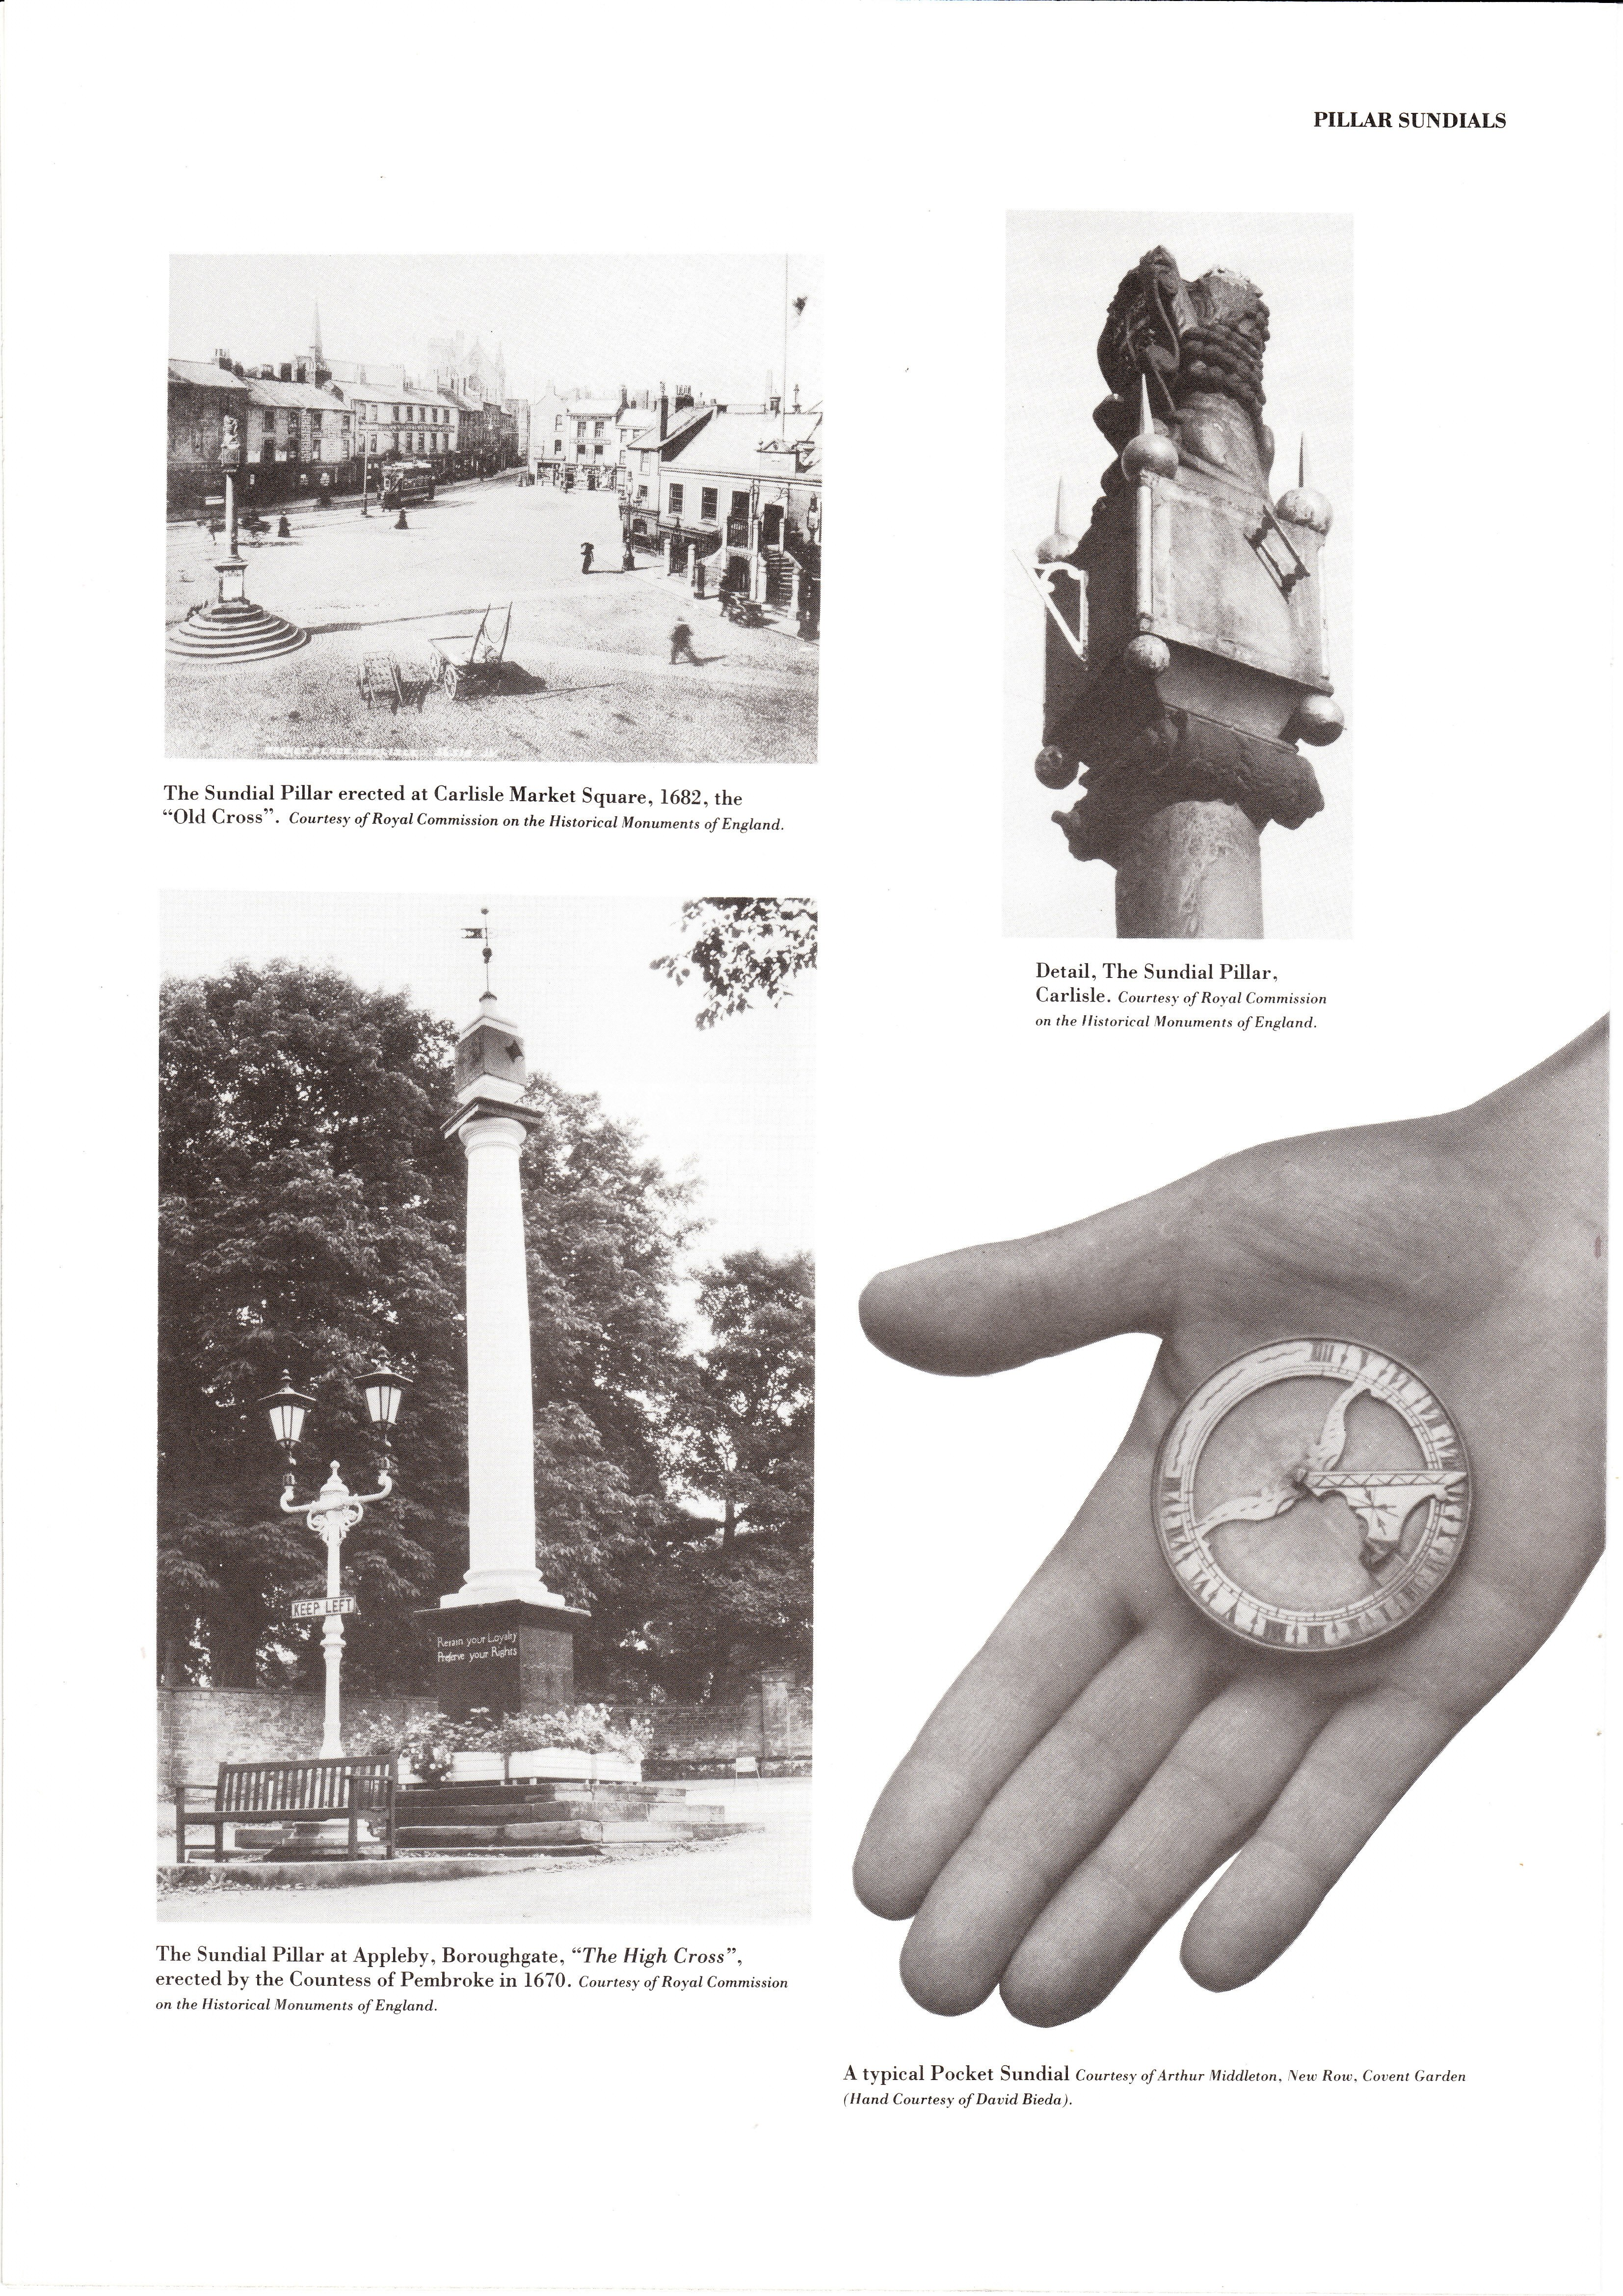 Pillar Sundials from �The Seven Dials� by founder trustee, the late Sir John Summerson, founder trustee